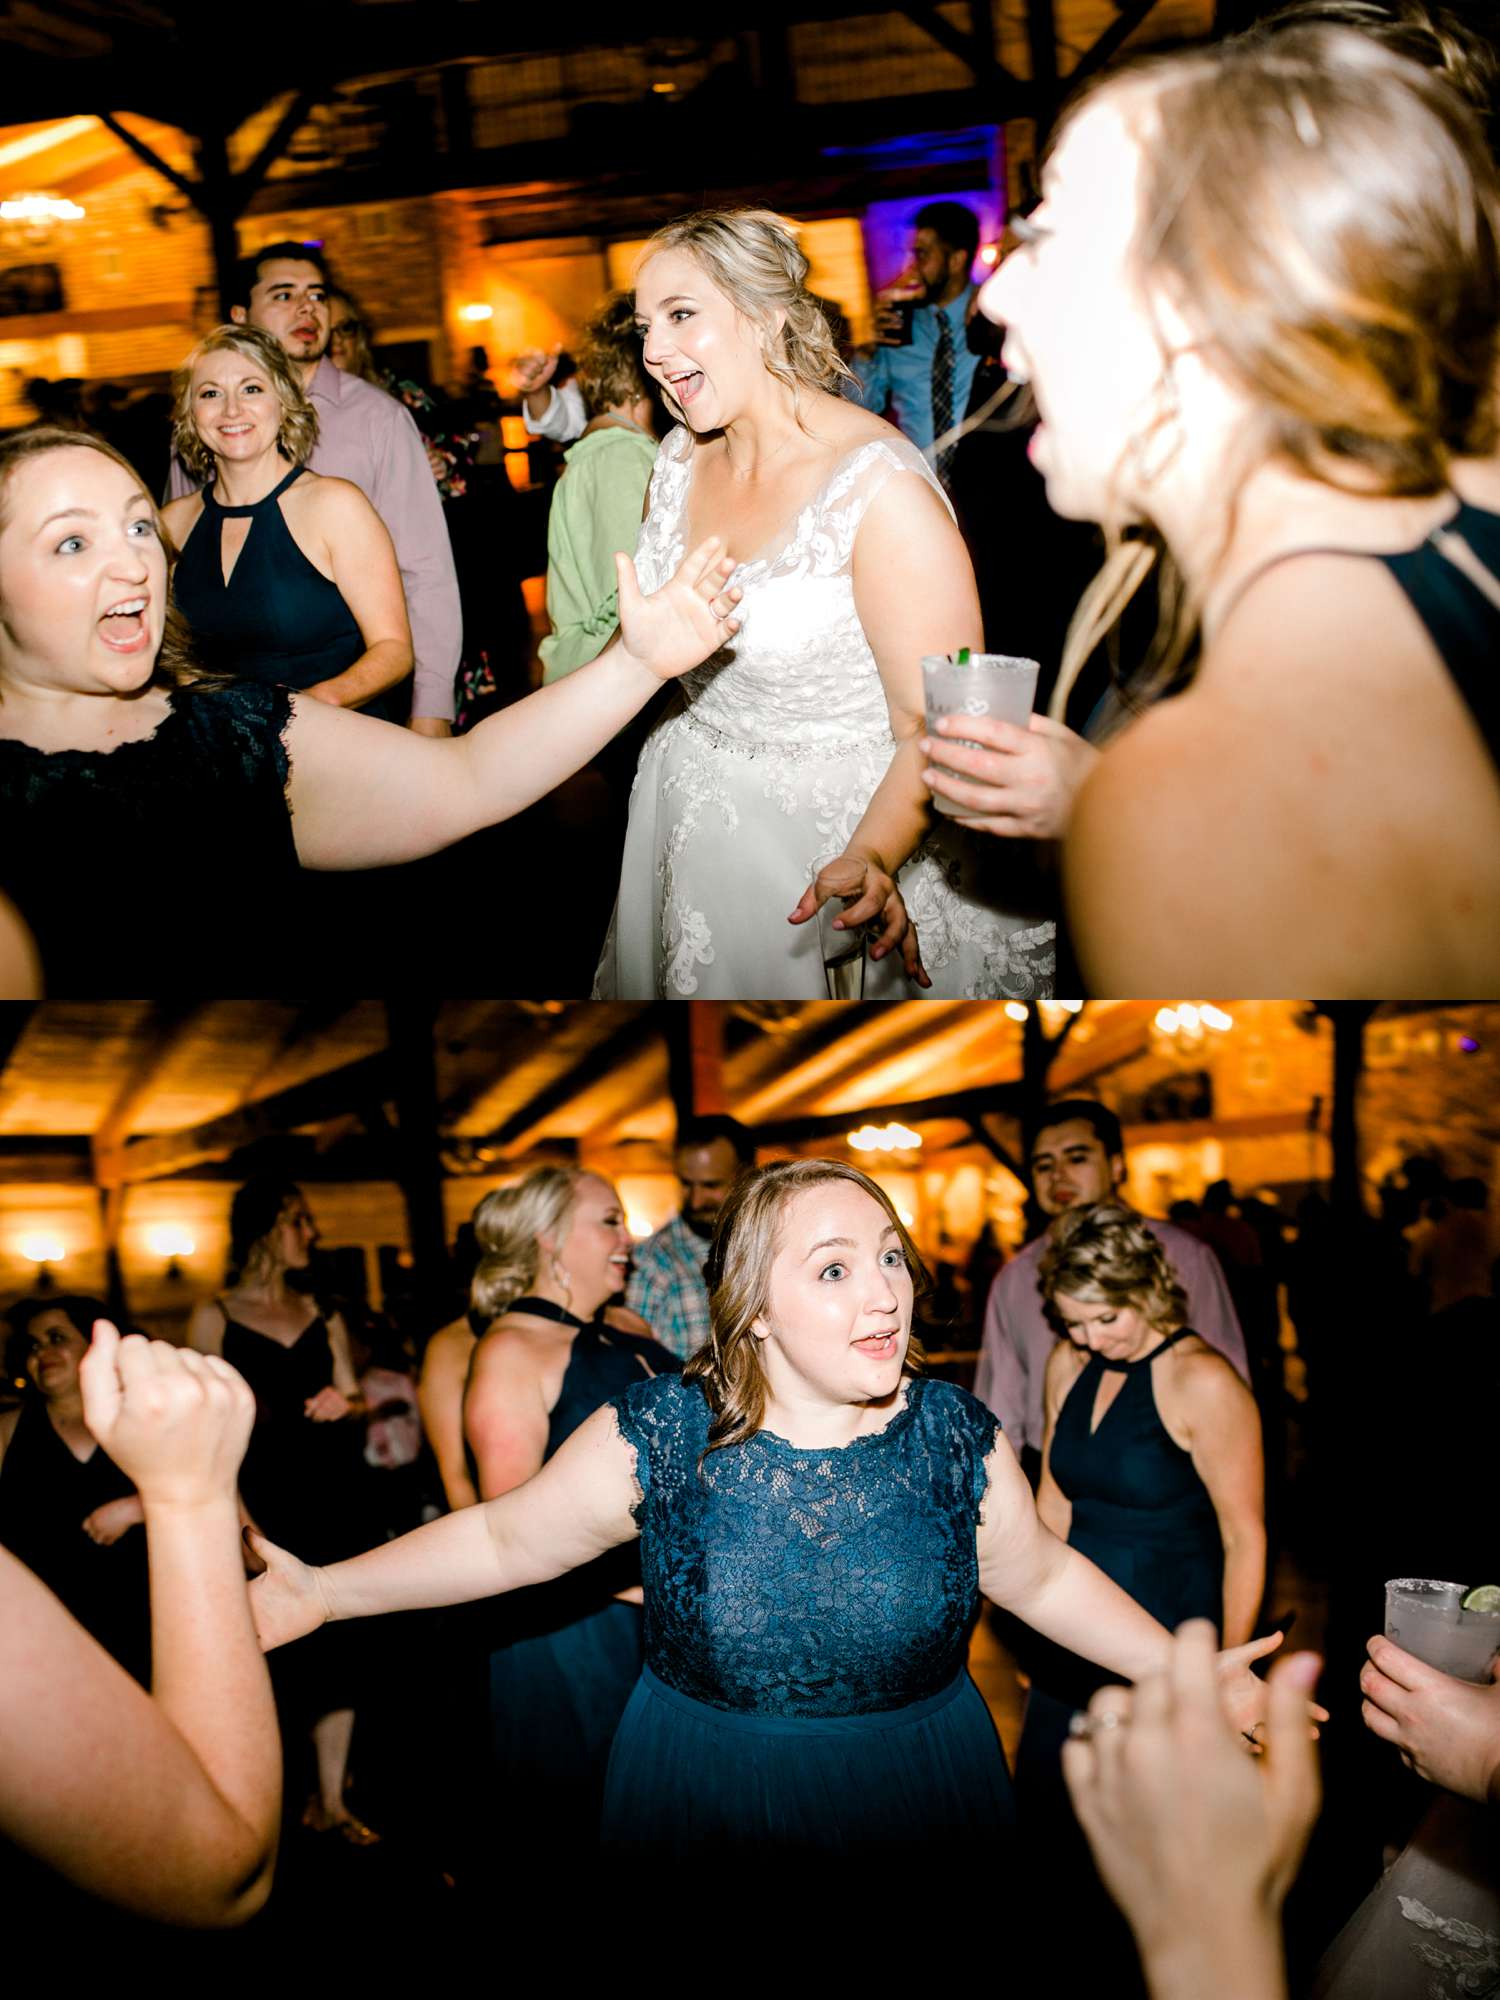 TIMMI+JORDAN_IRVINE_EBERLEY_BROOKS_EVENTS_ALLEEJ_WEDDINGS_0153.jpg